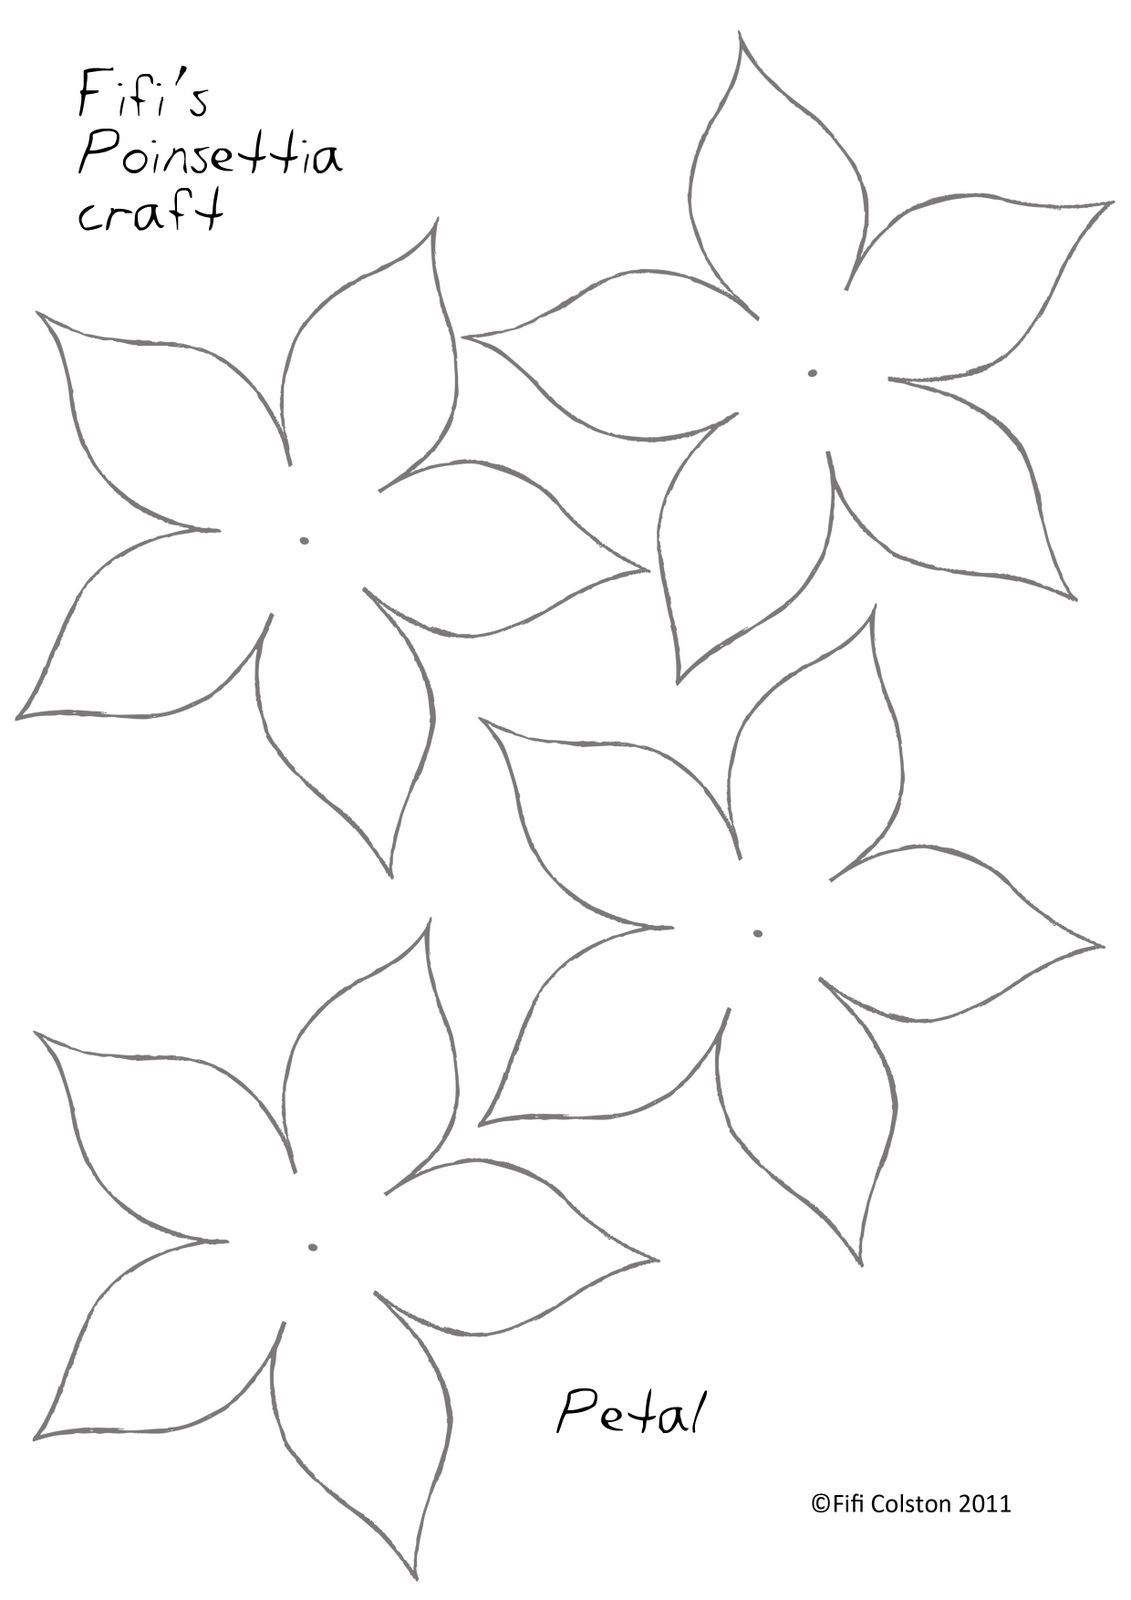 Fifi Colston Creative: Pretty Paper Poinsettias